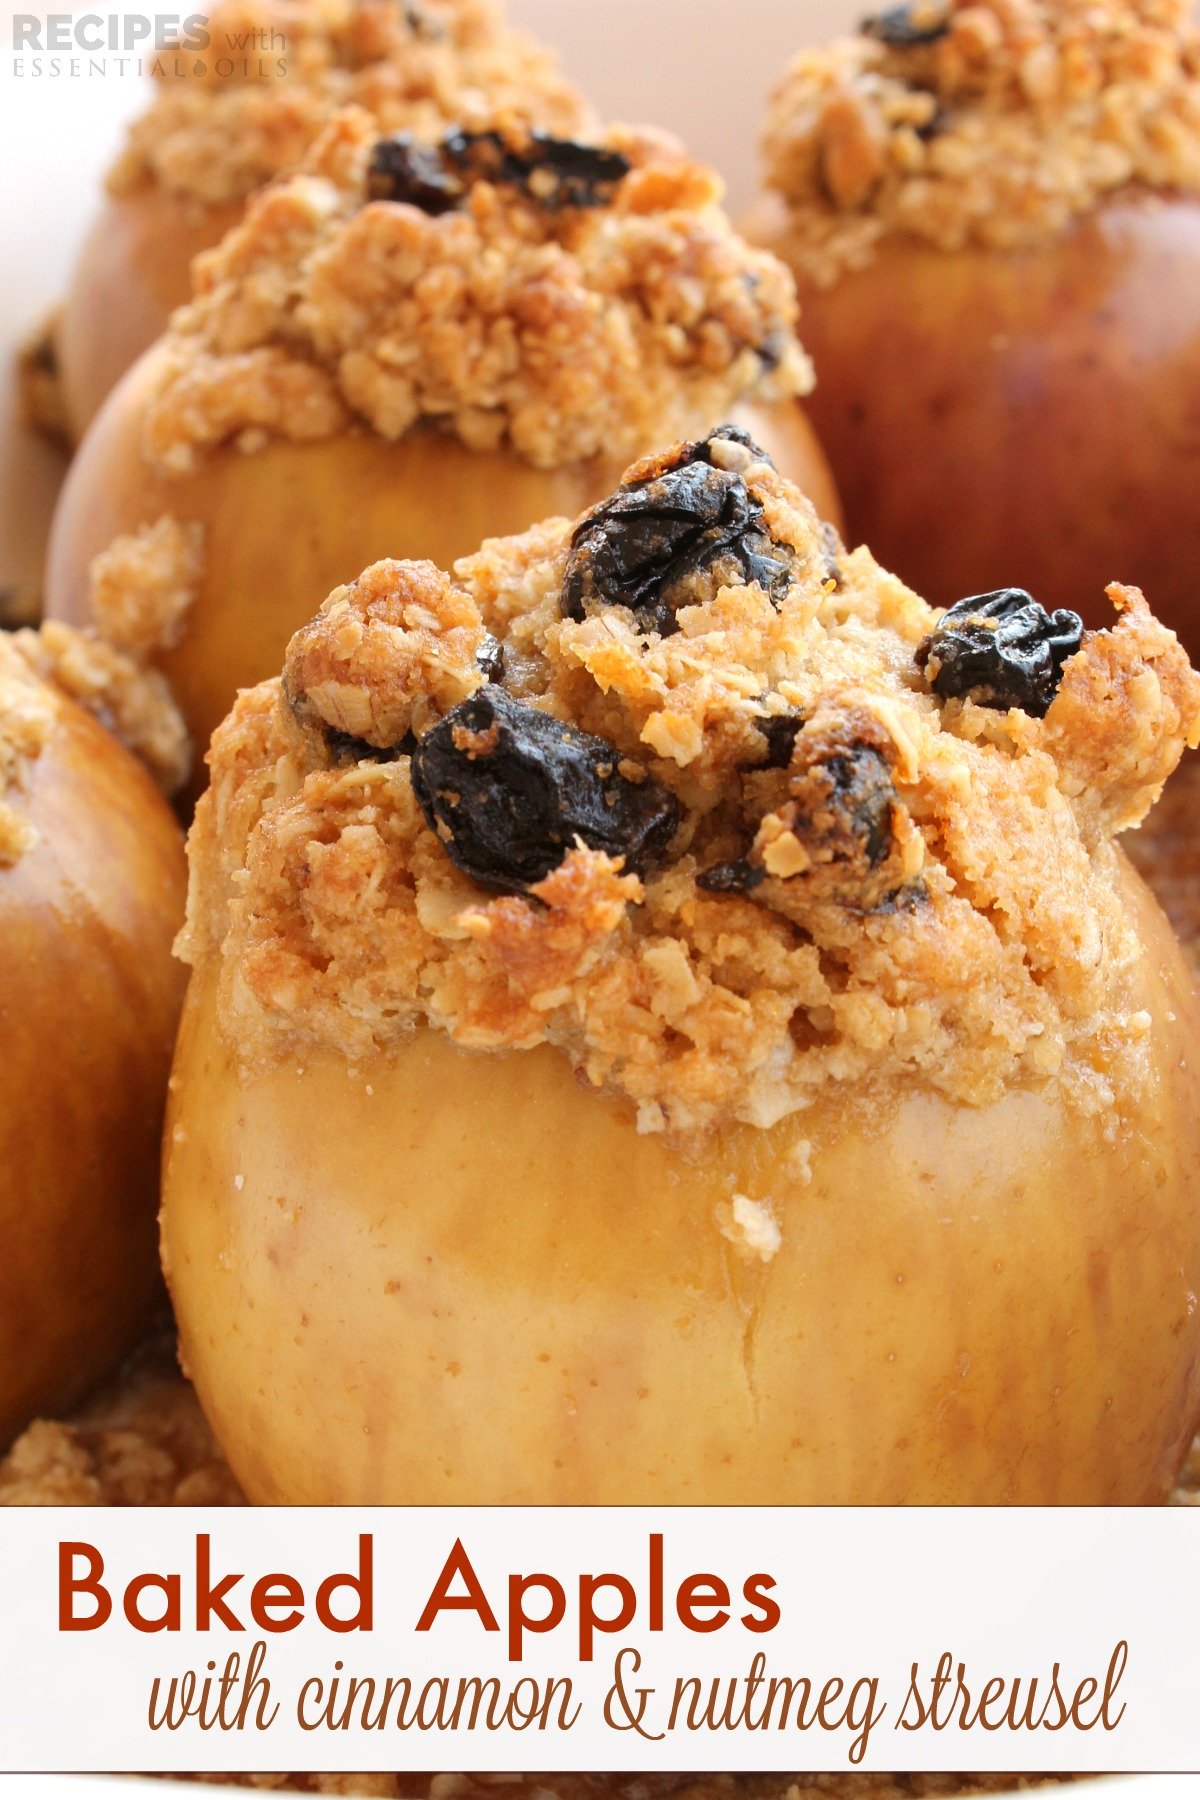 Baked Apples with Cinnamon and Nutmeg Streusel from RecipesWithEssentialOils.com